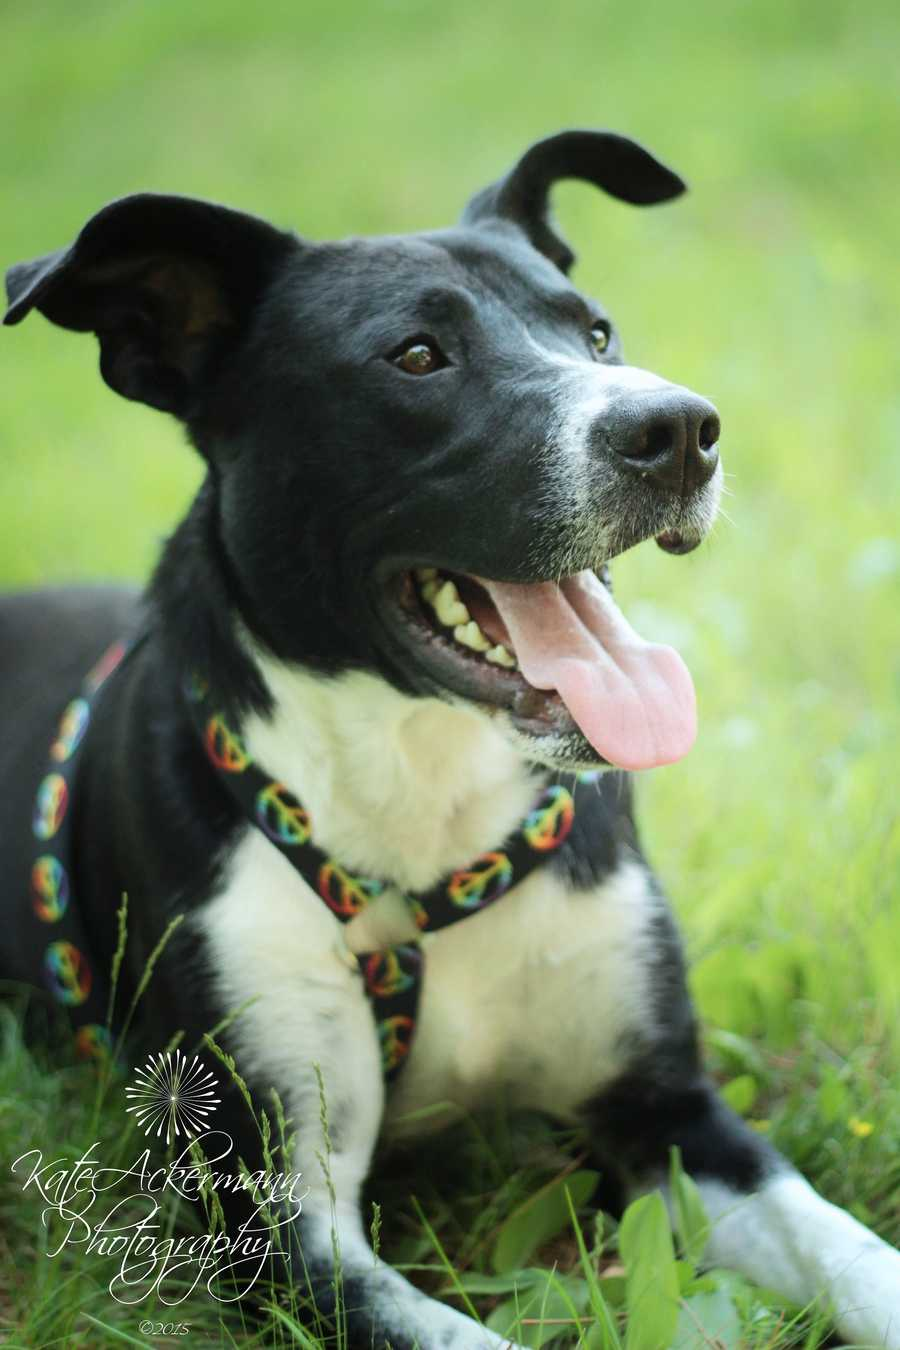 Thomas is a 1 year old border collie mix. He's a sweet boy who is learning to love life. MORE